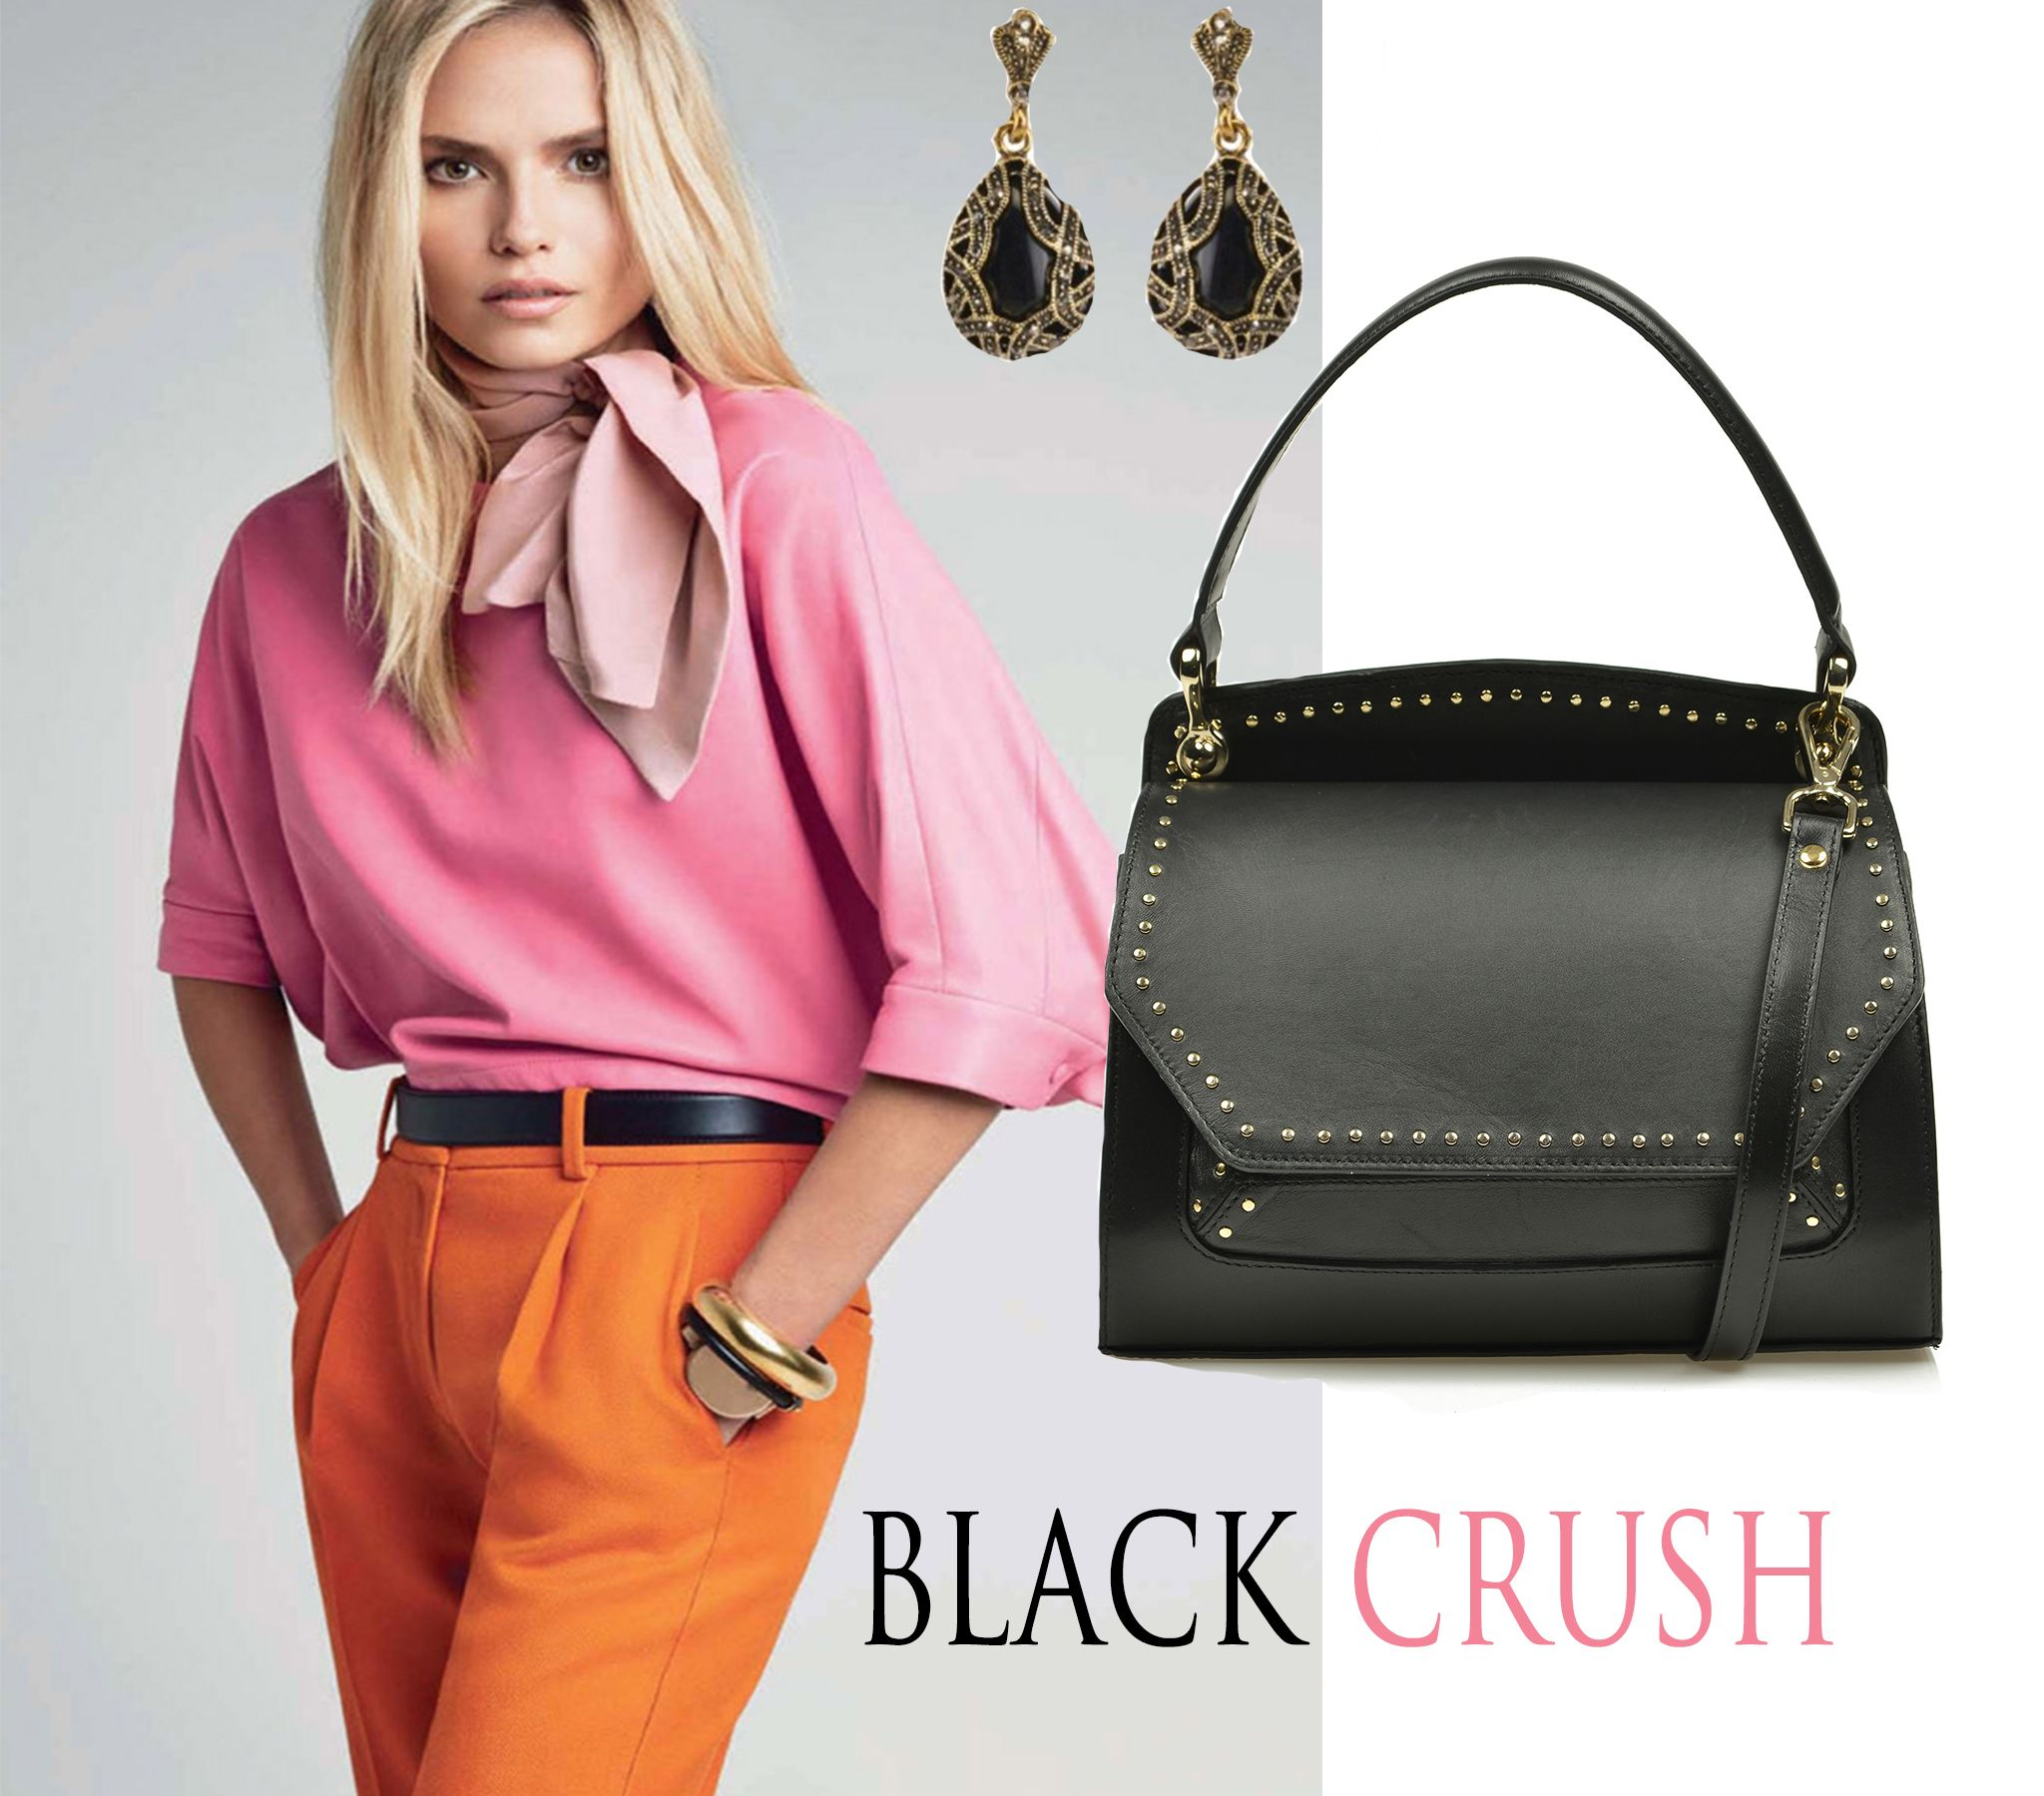 Black luxury accessories can delicately complement your colorful outfit by creating a wonderful contrast which makes you glow with a refined style and beauty. Pair leather bags colored in an elegant black with silky blouses or vibrant dresses to get a fresh look.